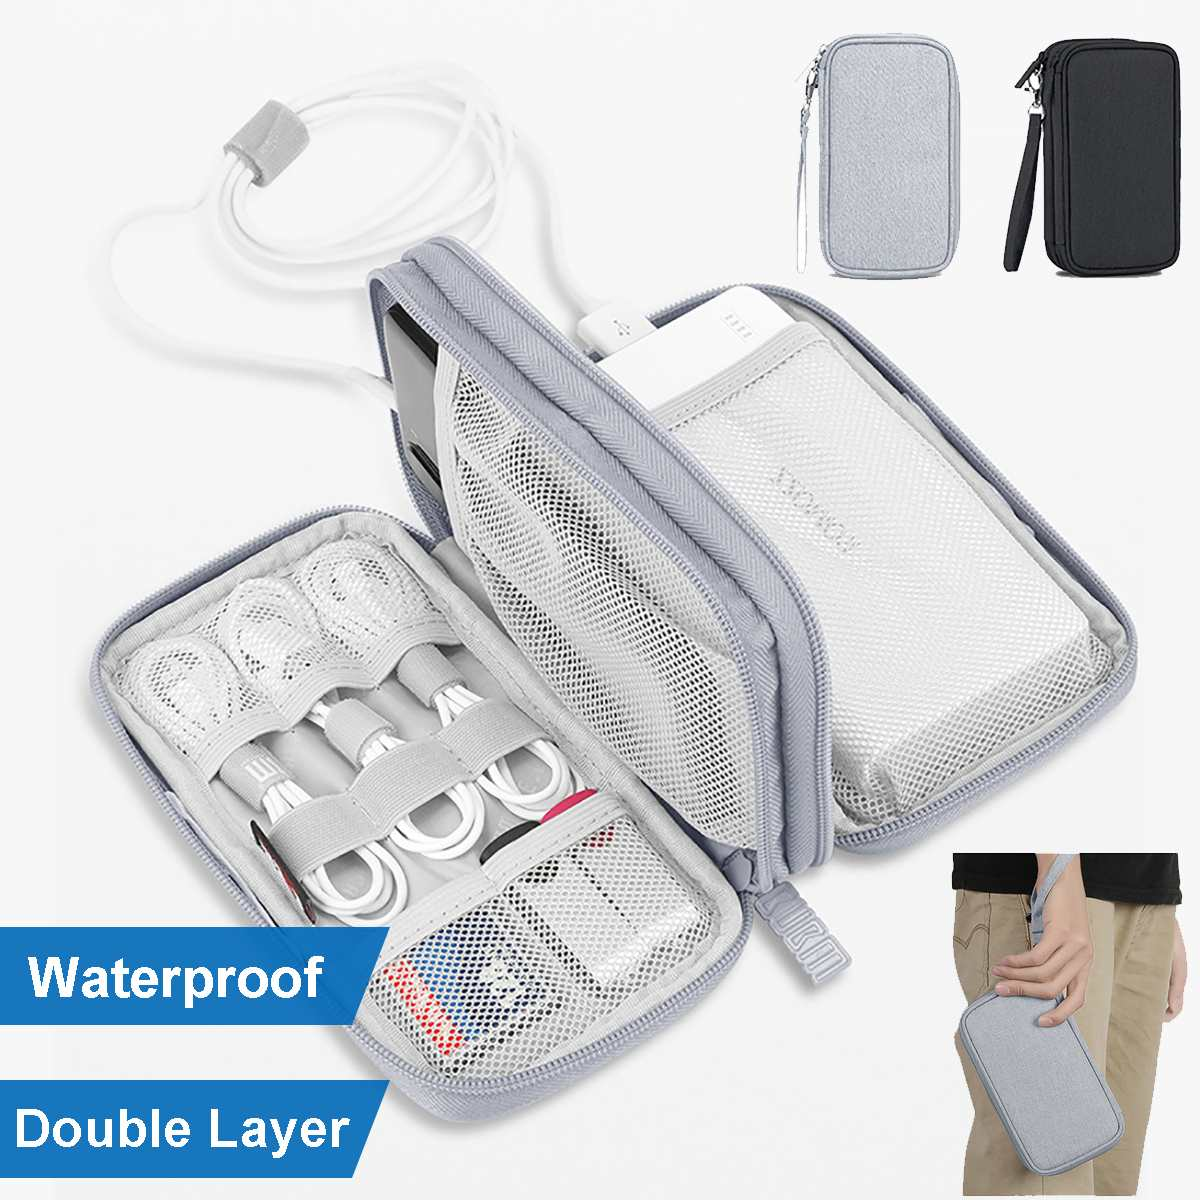 Double Layer Digital Accessories Bag Charging Treasure Mobile Phone Pouch Headphone Cable Data Cable For Traveling Organizer Bag